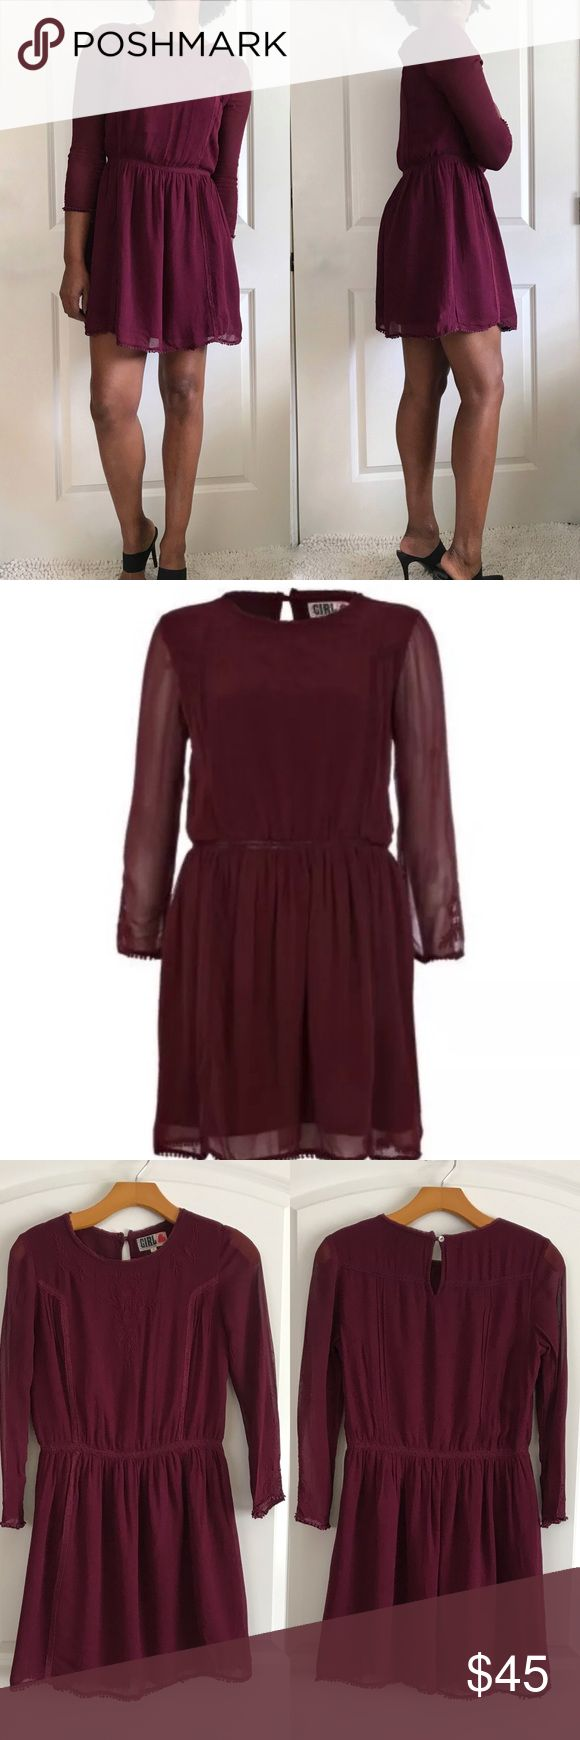 """Girl Chelsea River Island Embroidered Dress Long sleeve sheer dress by by River Island. U.K. Size 8 equals US size 4. Fits like a 2 or 0. Fully lined Dress with embroider detail. Key hole button in back. Hidden side zip. Pom Pom trim on sleeve. Small line of pulled thread in back (pic included) length 32"""", pit to pit 17"""" River Island Dresses Long Sleeve"""